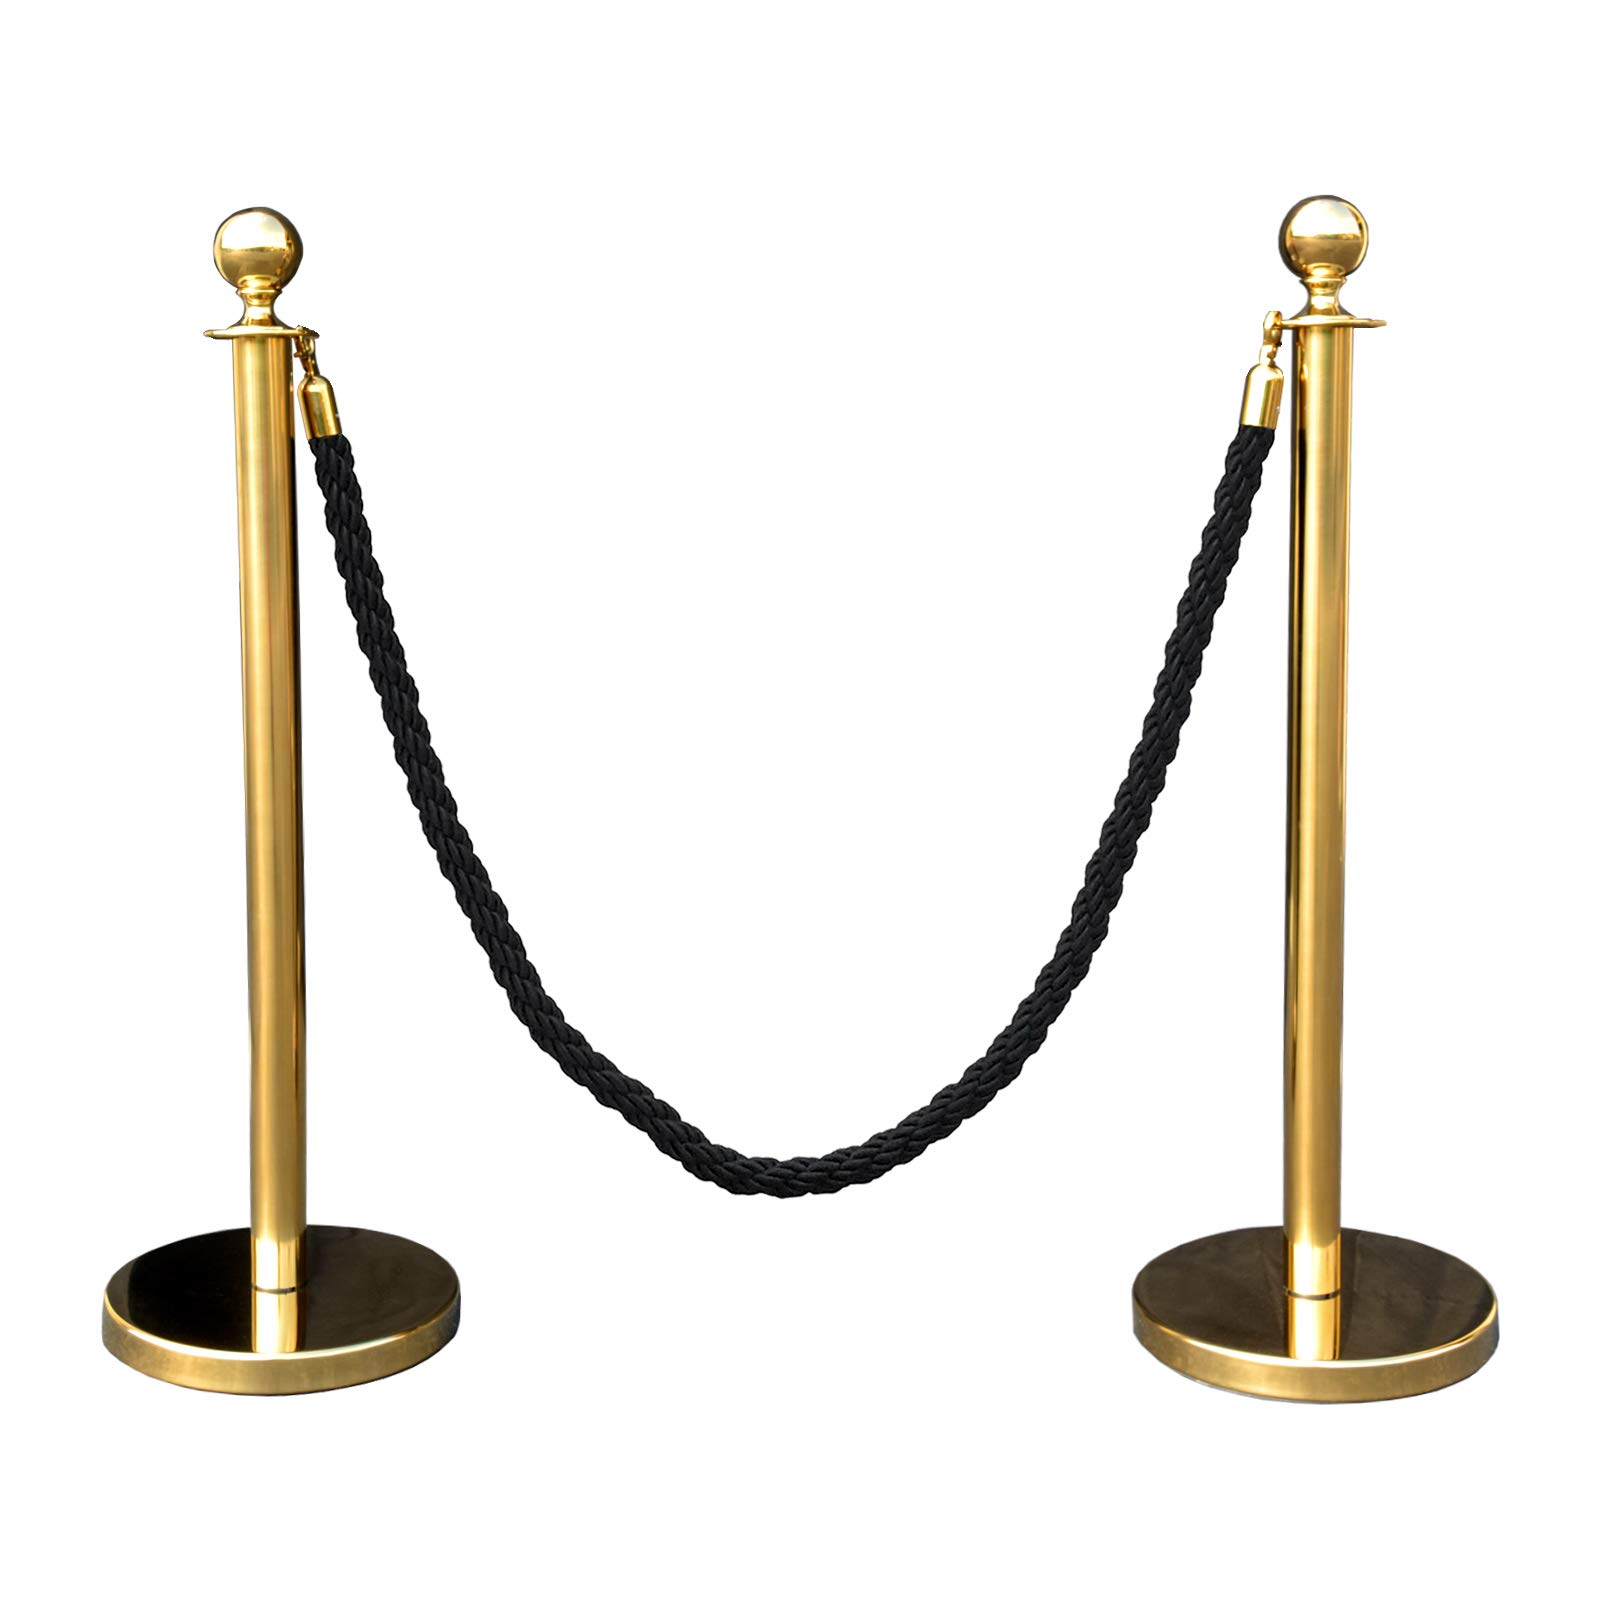 Gold Crown Top Decorative Rope Safety Queue Stanchion Barrier in 3 pcs Set, VIP Crowd Control (60'' Black Braided)